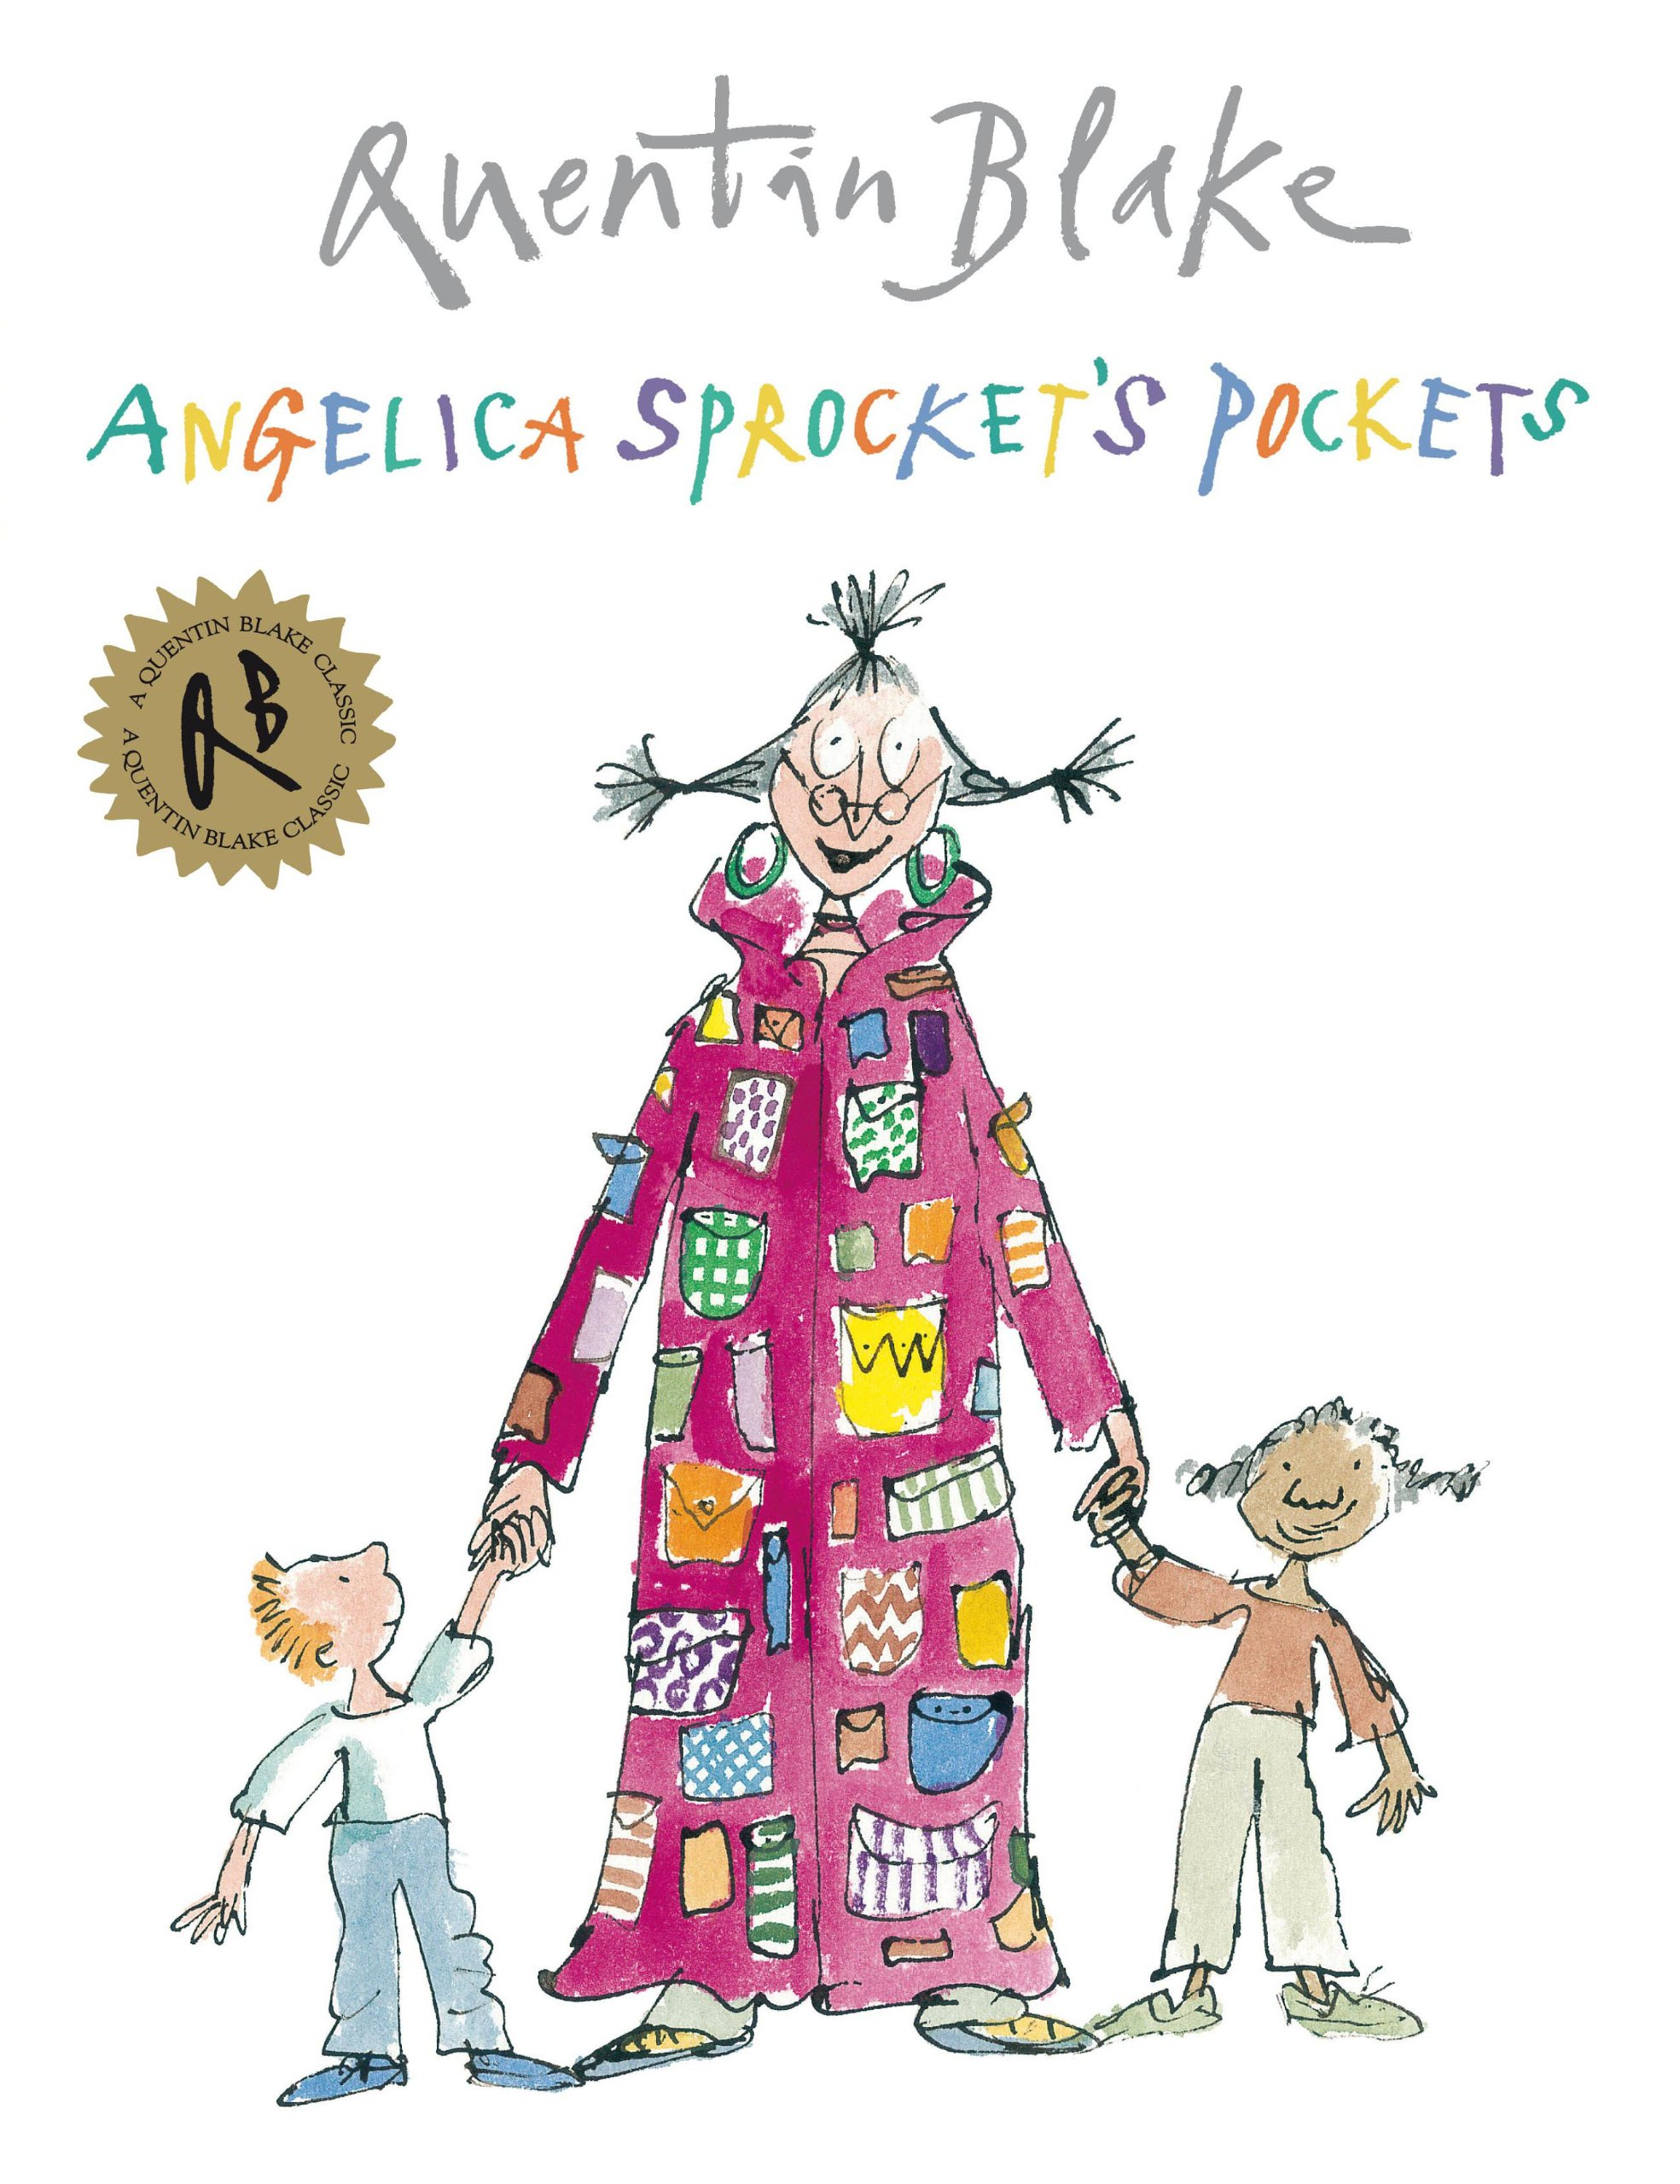 Angela Sprocket's Pockets, Quentin Blake - A Quentin Blake classic is a fantastic choice for any book club! Our viewers were rolling around with laughter at the nonsense that emerges from Angela Sprocket's pockets. Handkerchiefs, cheese, umbrellas…whatever next! As a follow-up activity, we asked our book clubbers to draw another pocket and surprise their friends with an unexpected pocket filler. Teachers, parents, and students can have so much fun with this book!